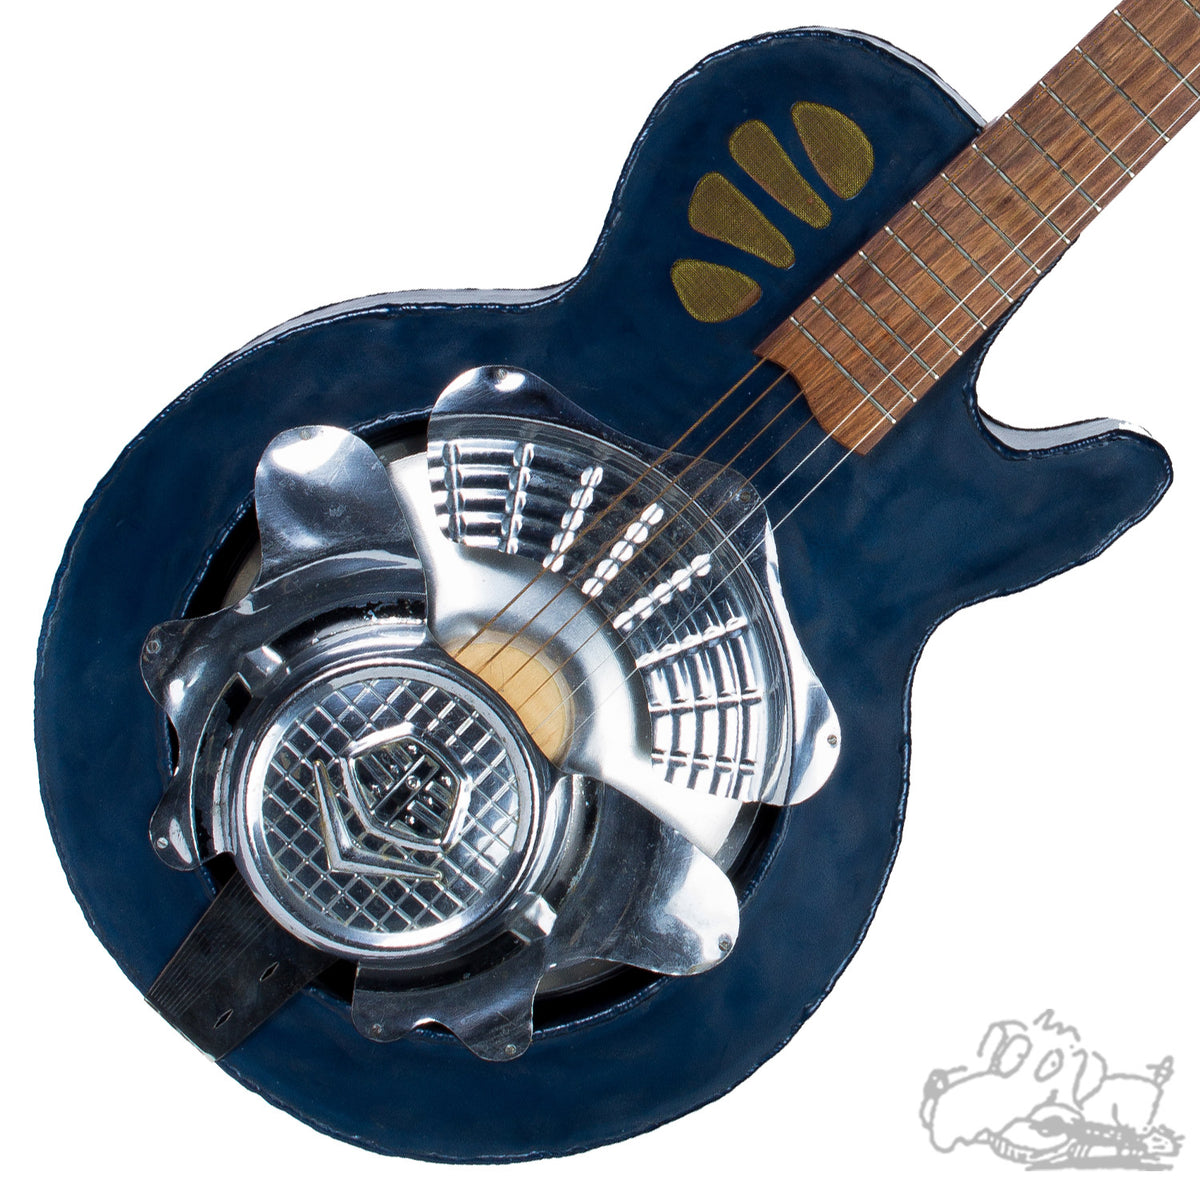 Pogreba Hubcap Resonator